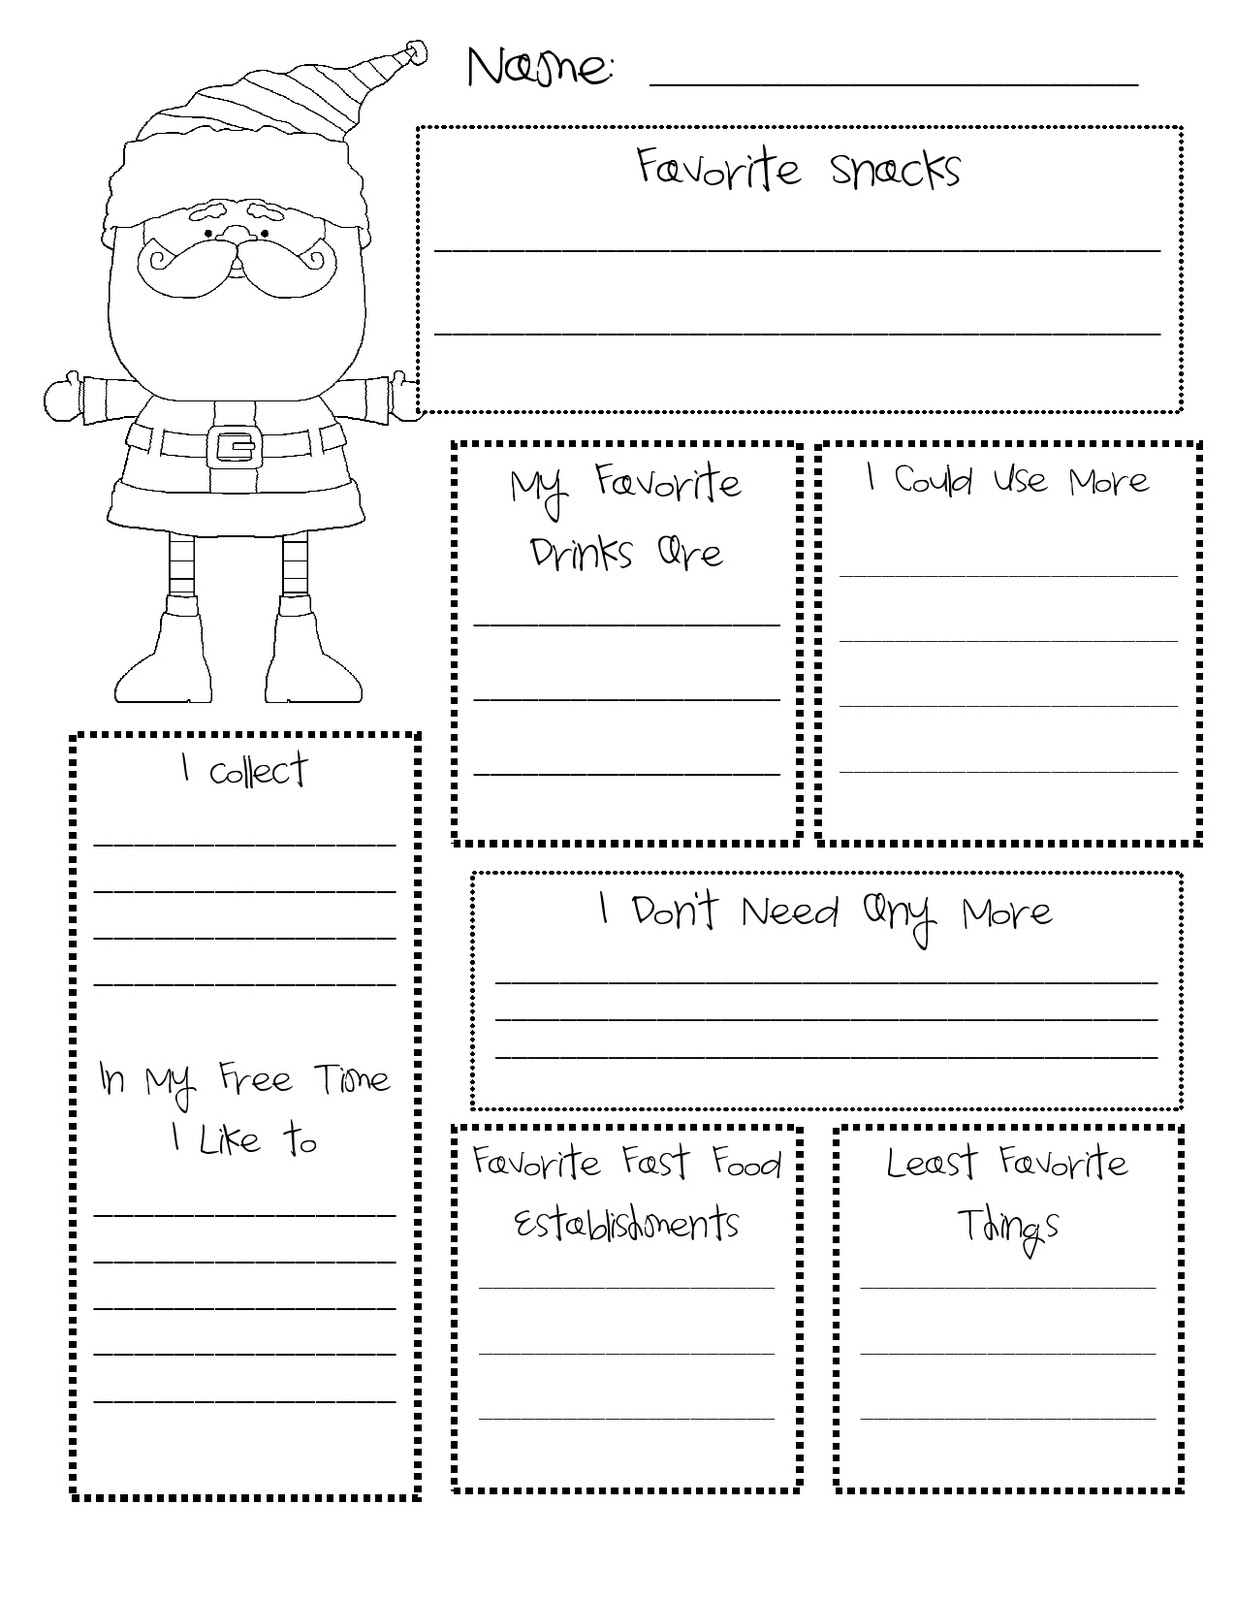 art secret santa gift exchange forms free printable santa tags